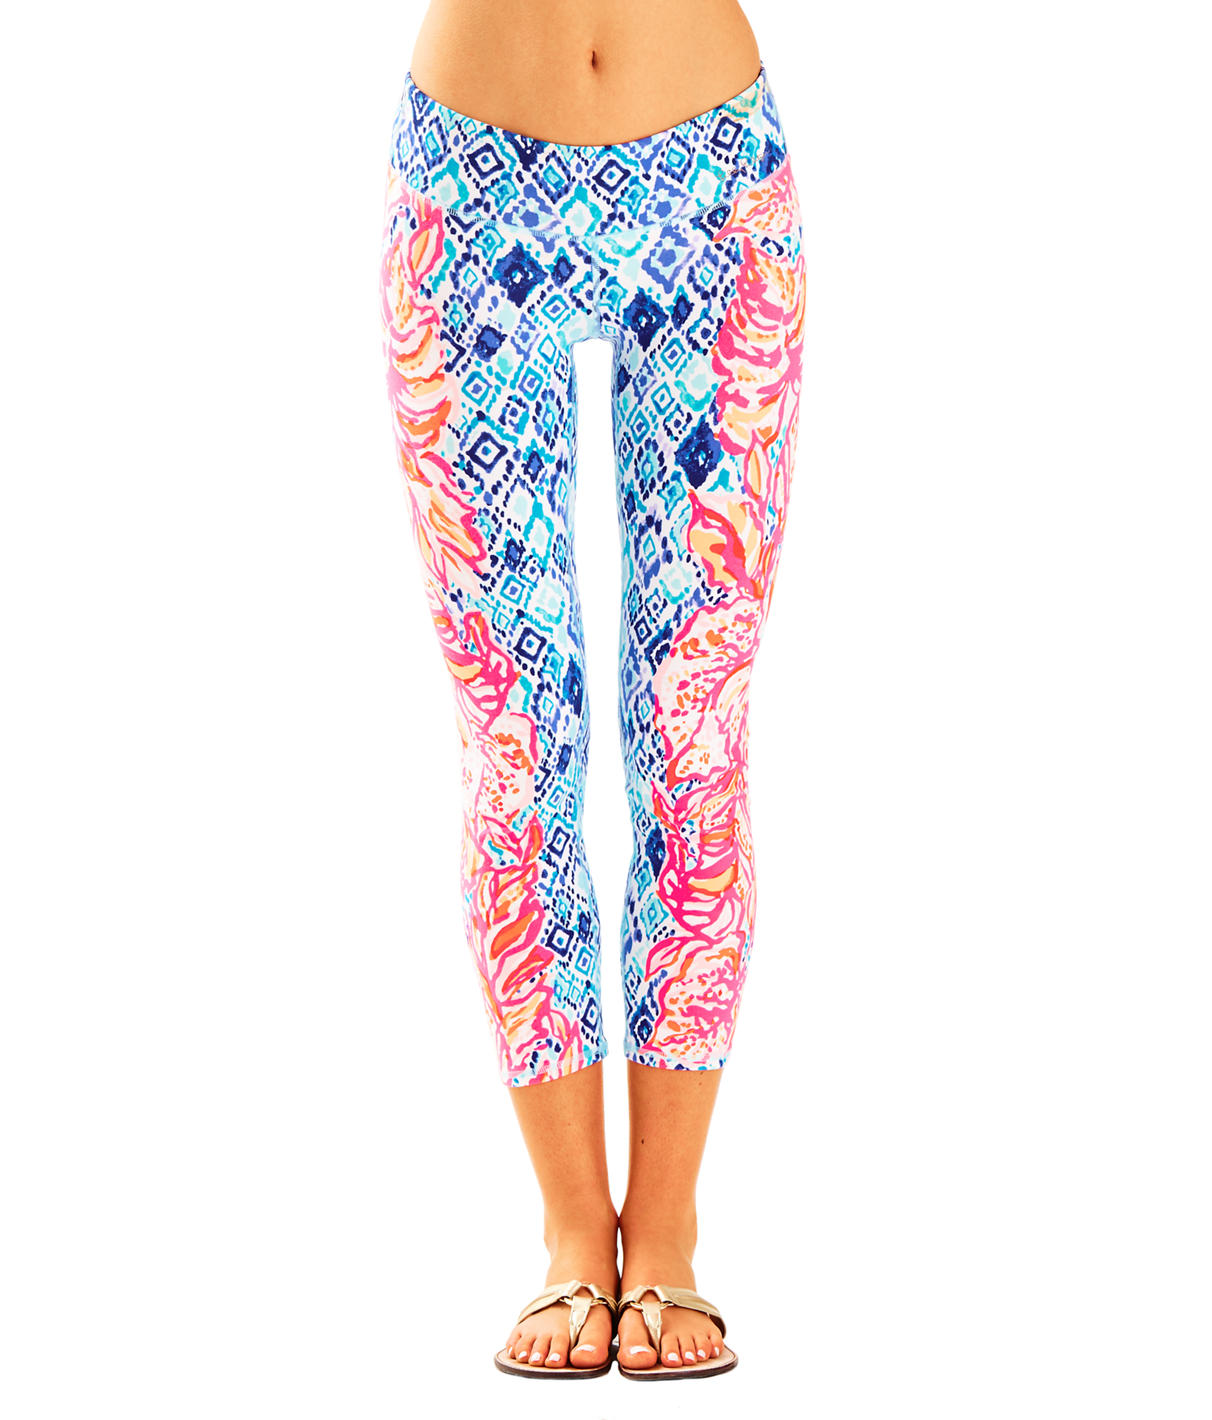 Lilly Pulitzer UPF 50+ Luxletic 21